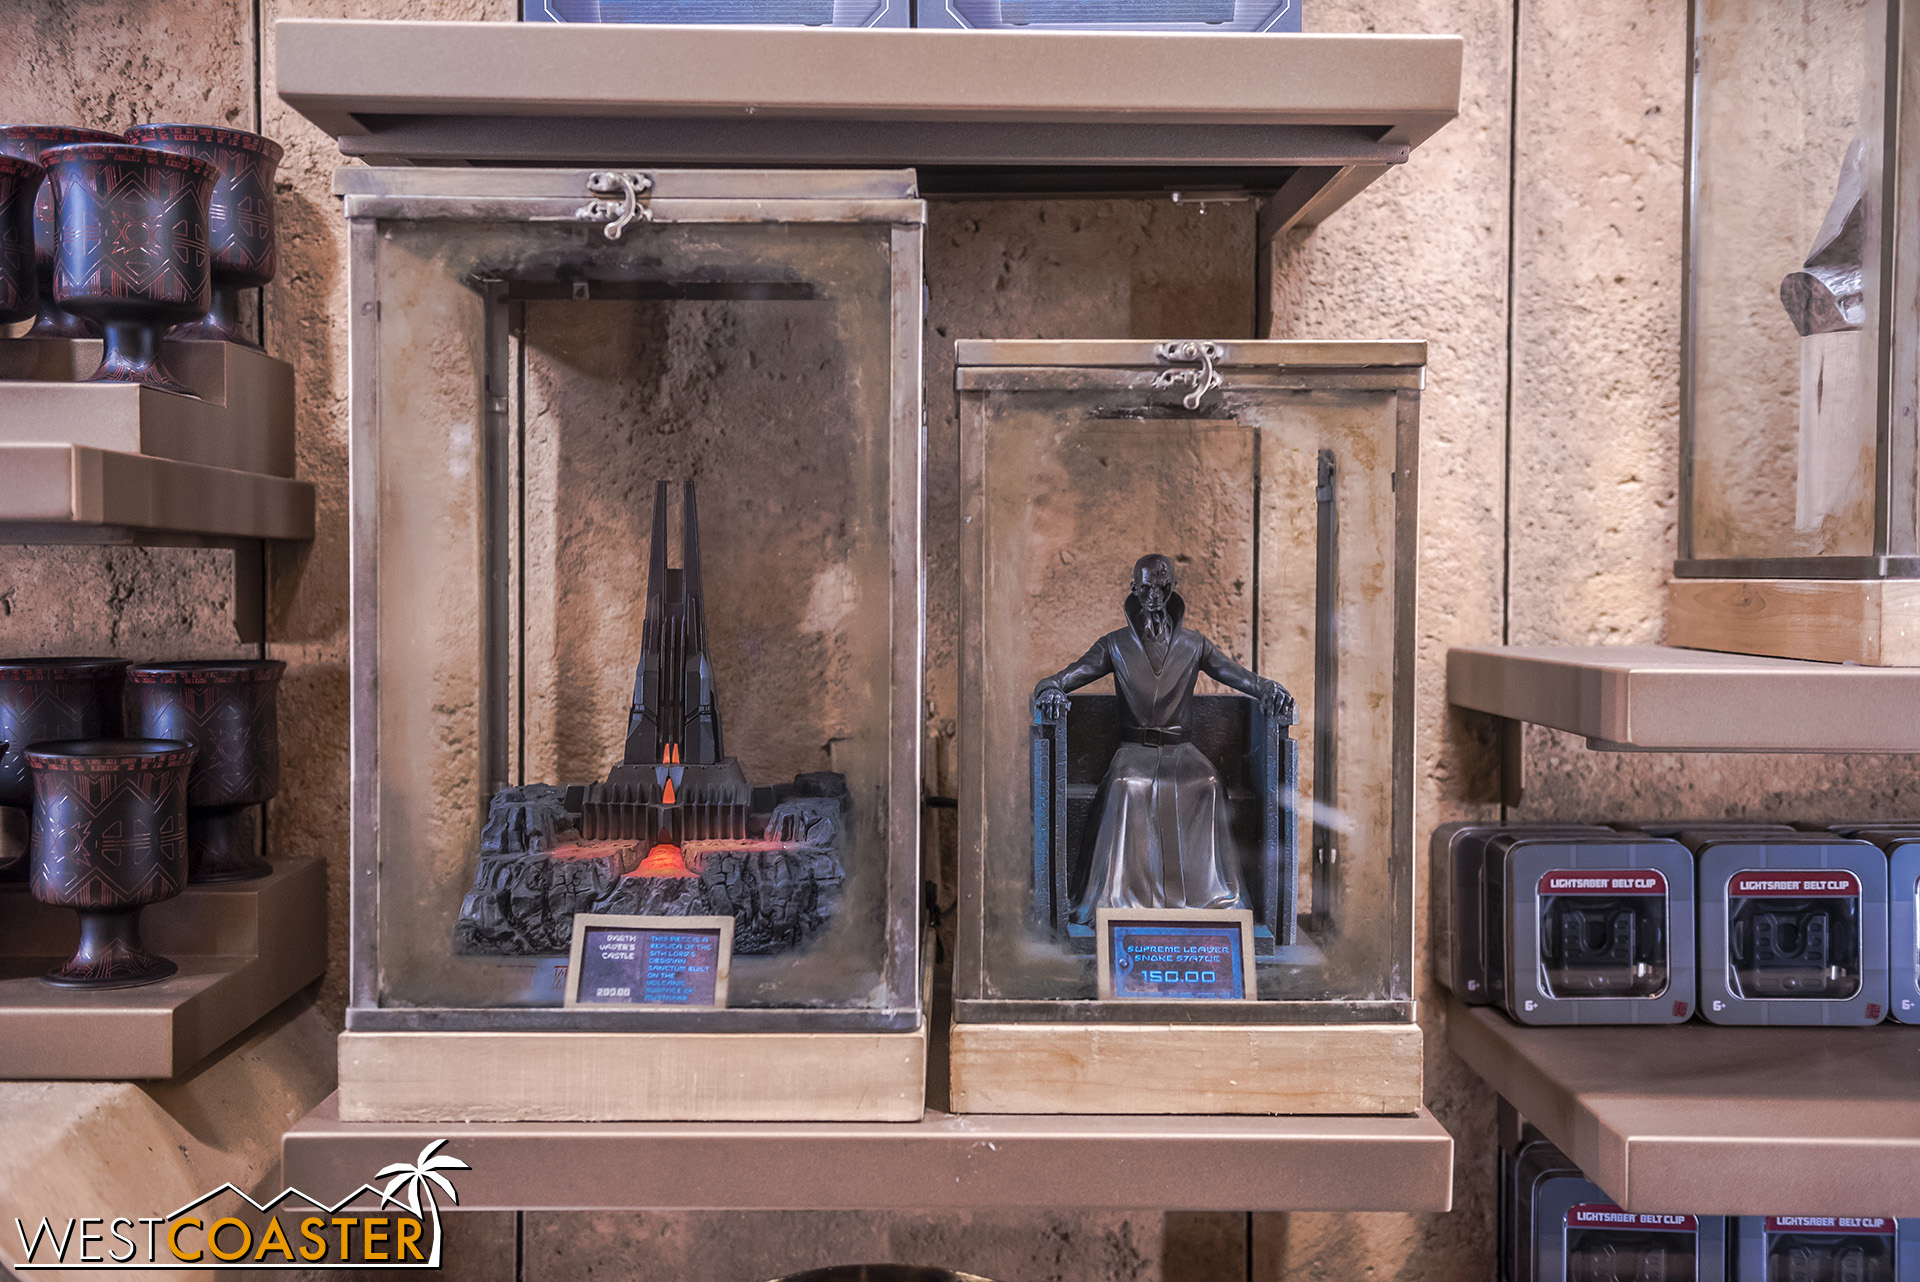 The Sith memorabilia is pricey but cool.